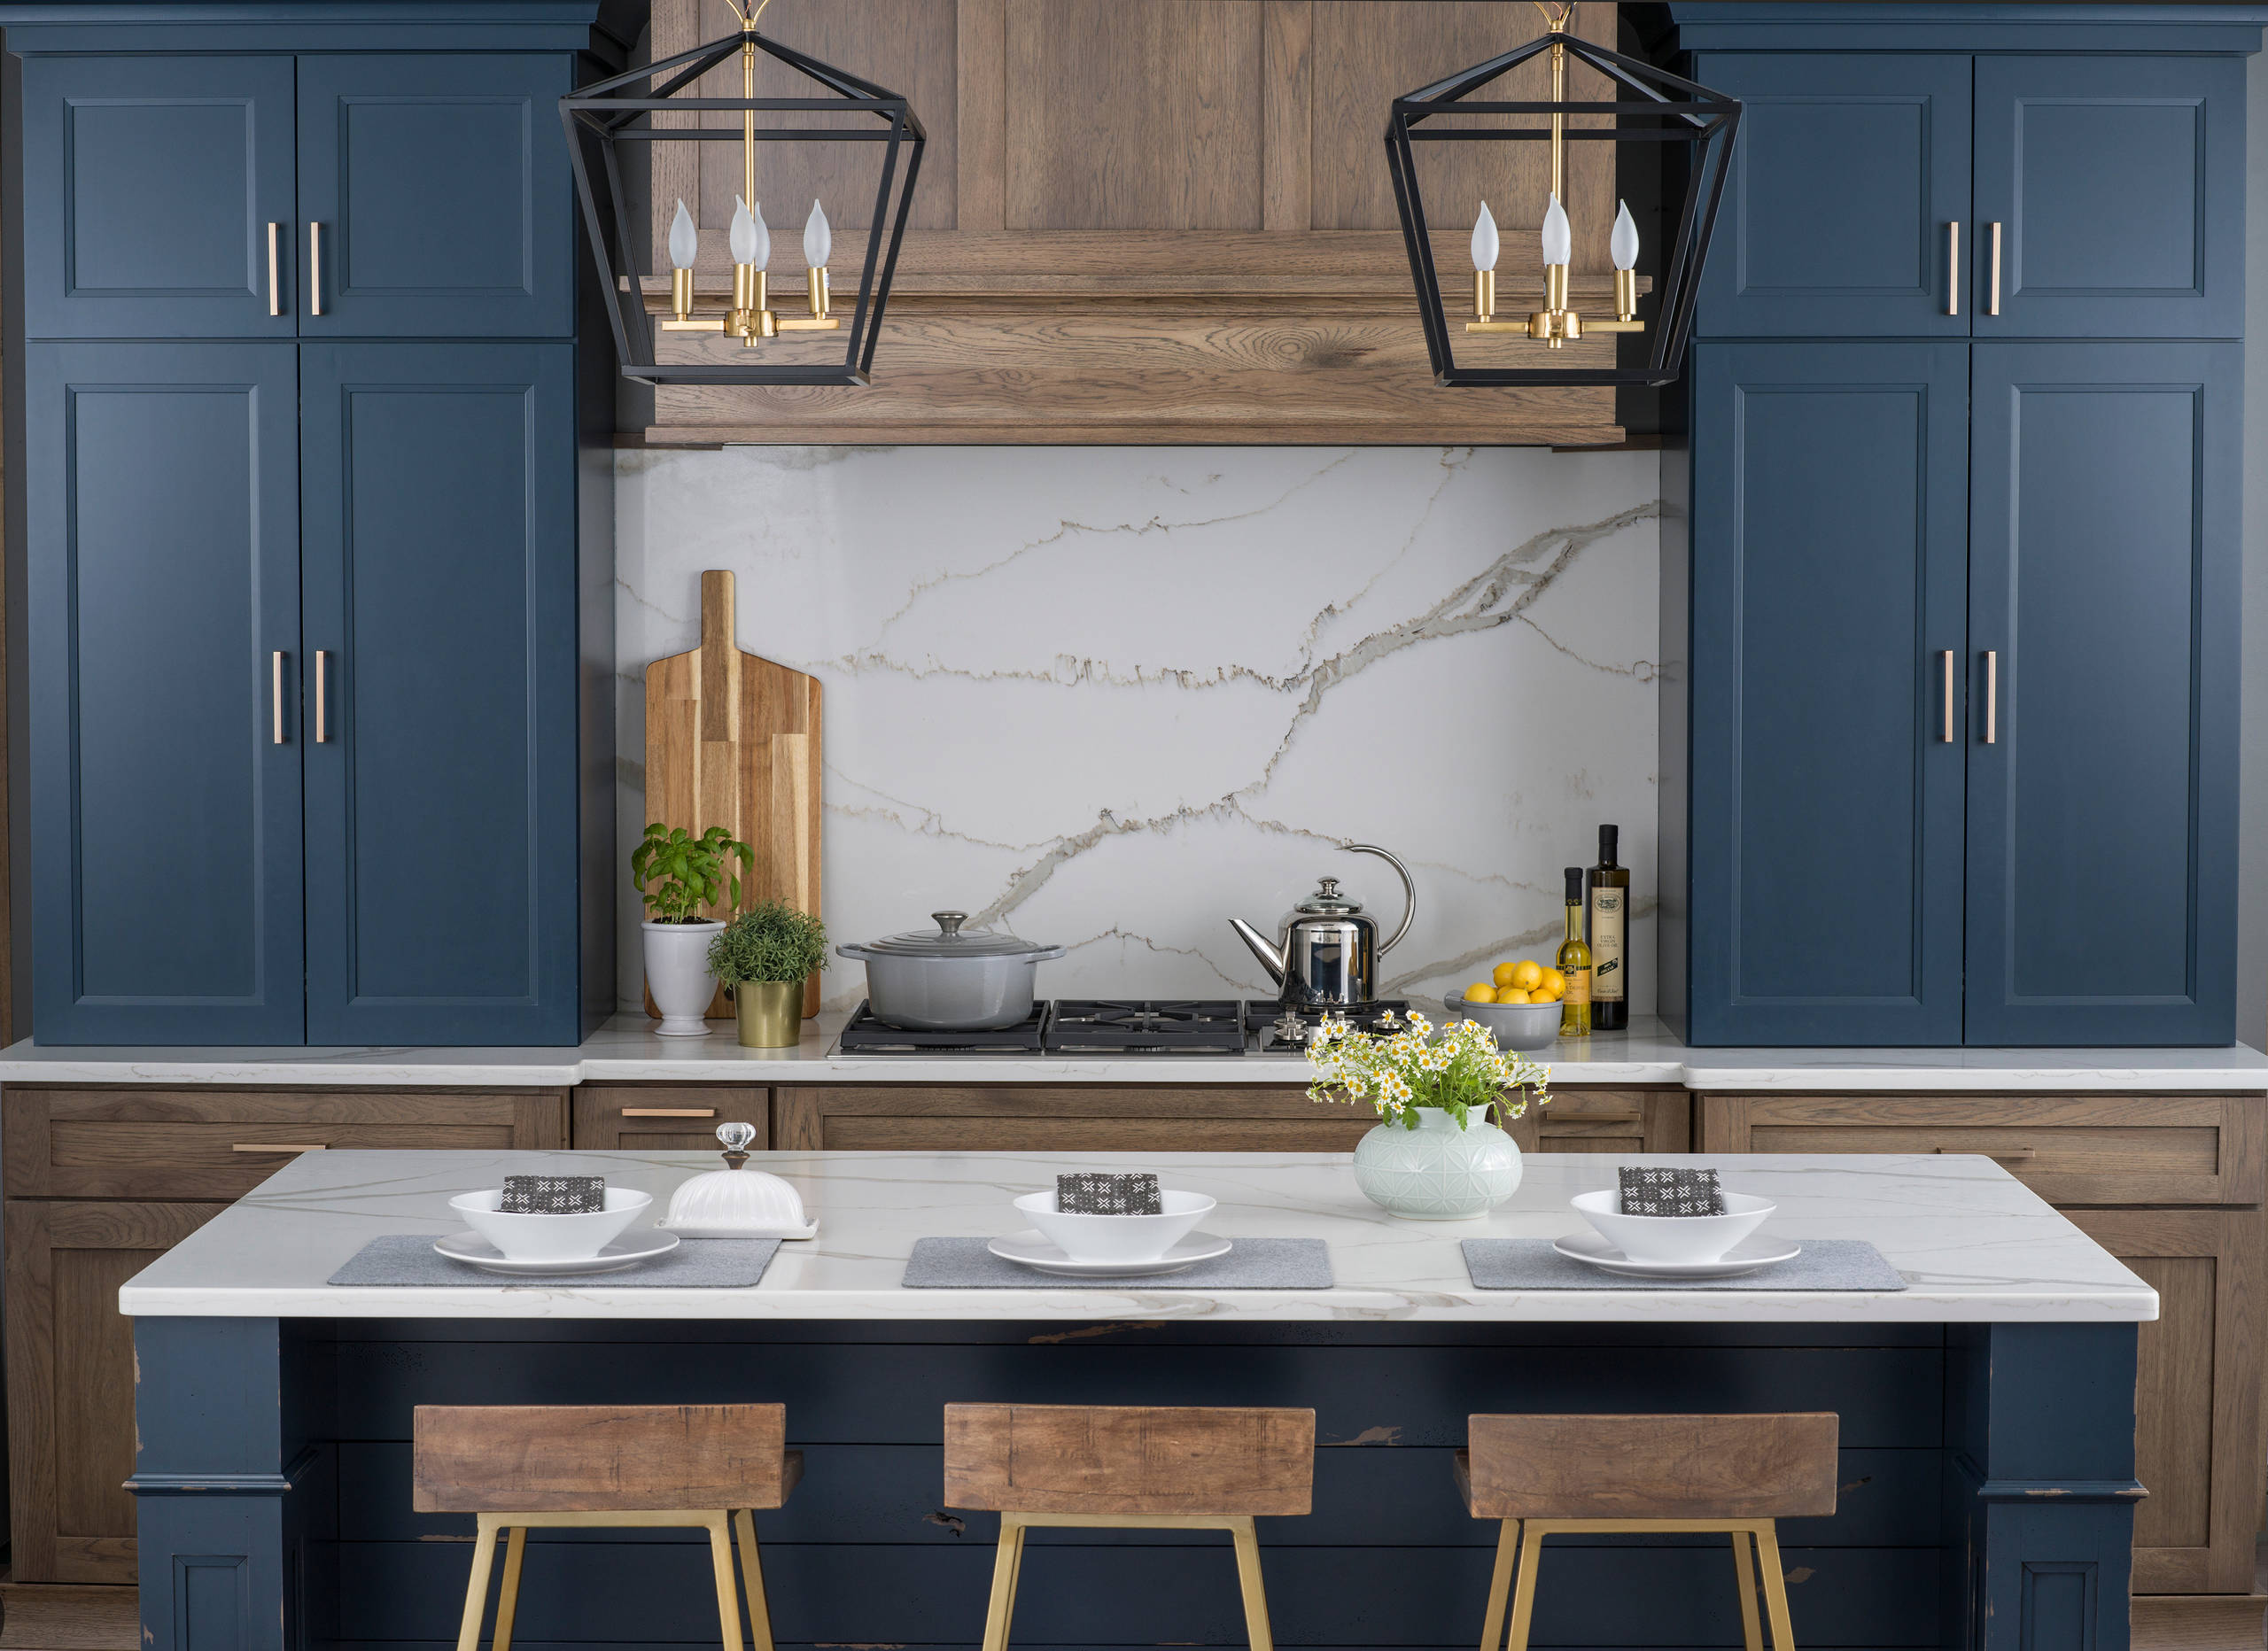 Dempsey Style in Gale Force Finish - Dura Supreme Cabinetry